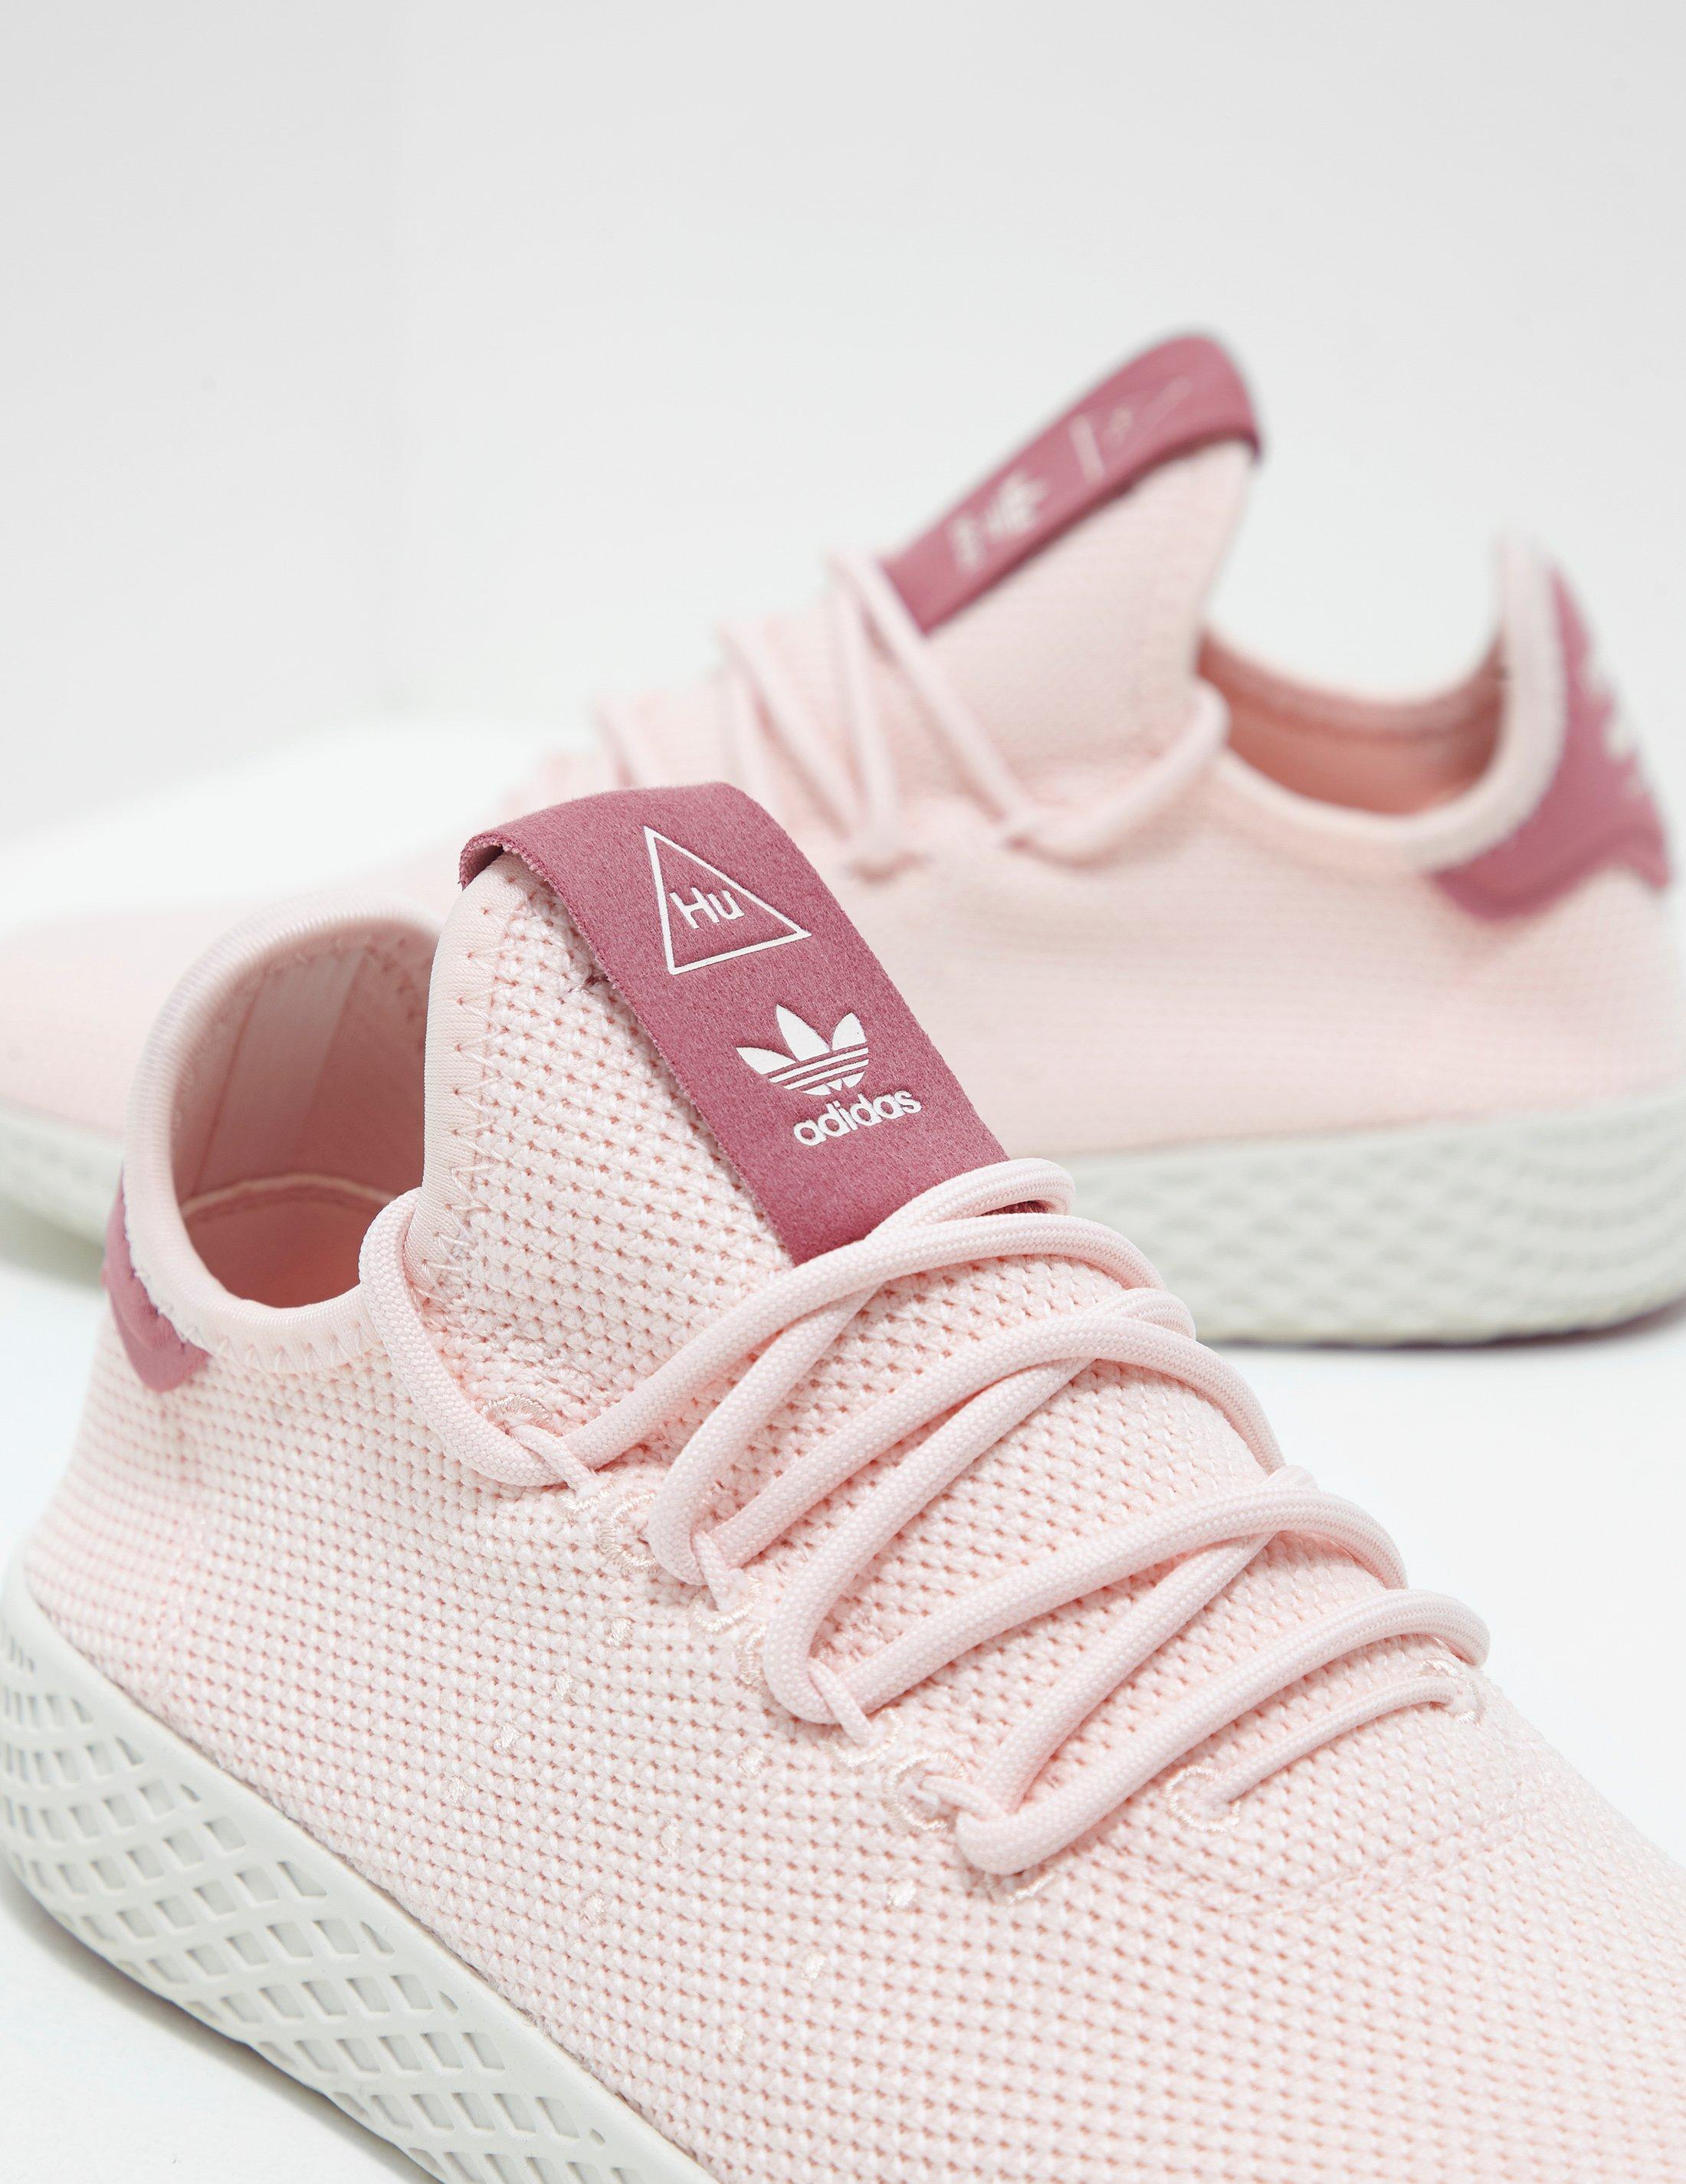 2bc5009ae0e99 adidas Originals X Pharrell Williams Tennis Hu Trainers Pink in Pink - Save  42% - Lyst